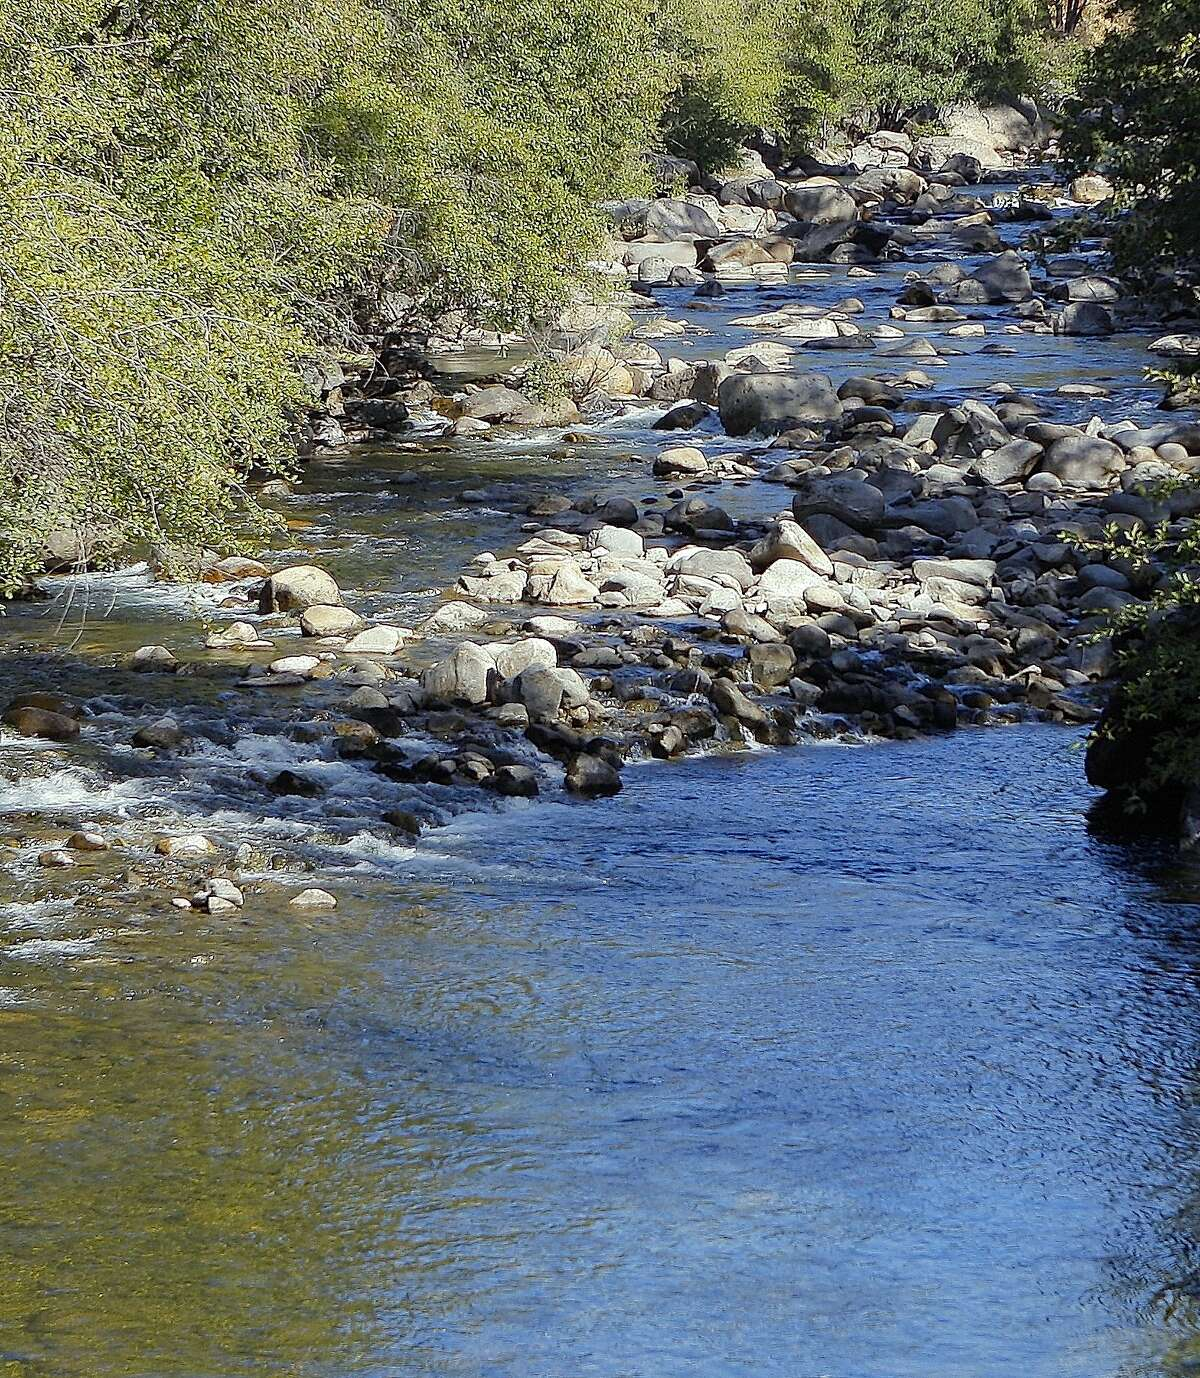 On the road to Cherry Lake in Stanislaus National Forest, you cross over the upper Tuolumne River downstream of Cherry Creek